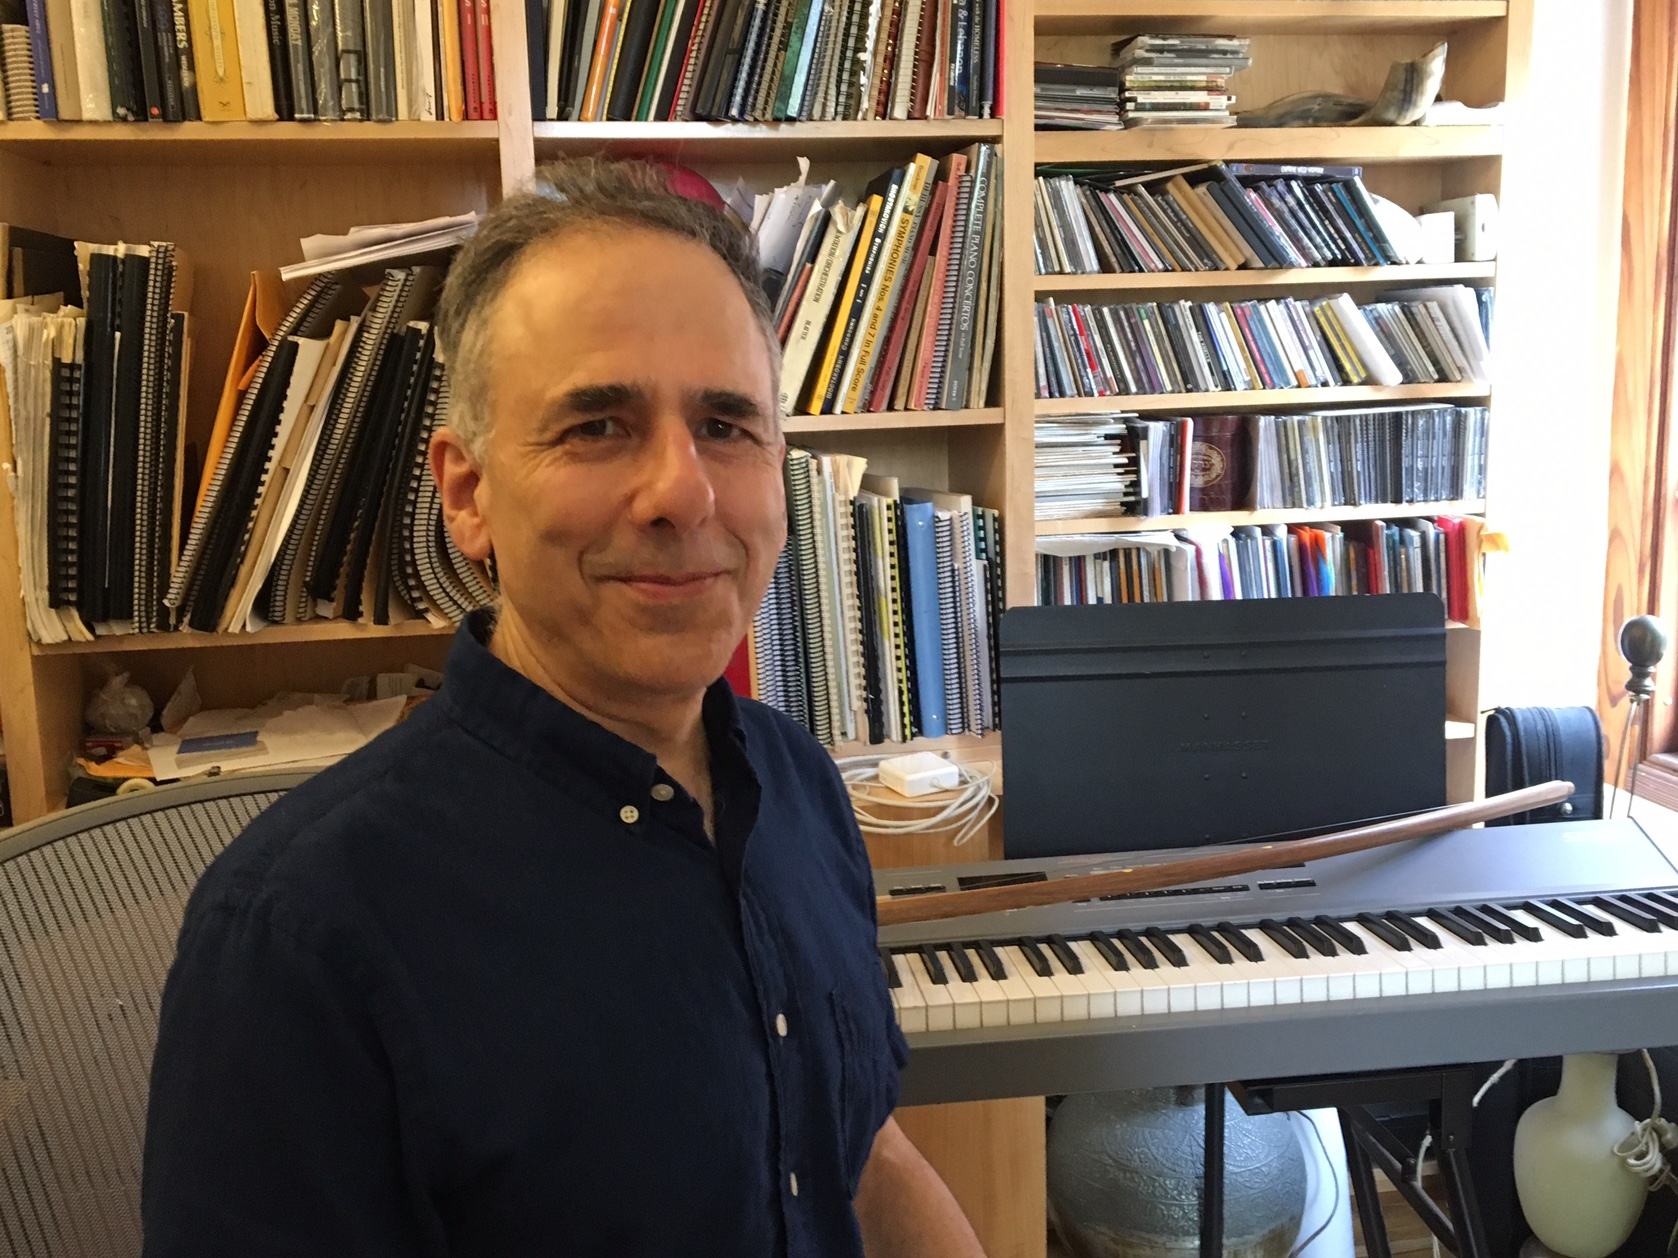 Composer Michael Gordon at his studio on Desbrosses Street in lower Manhattan